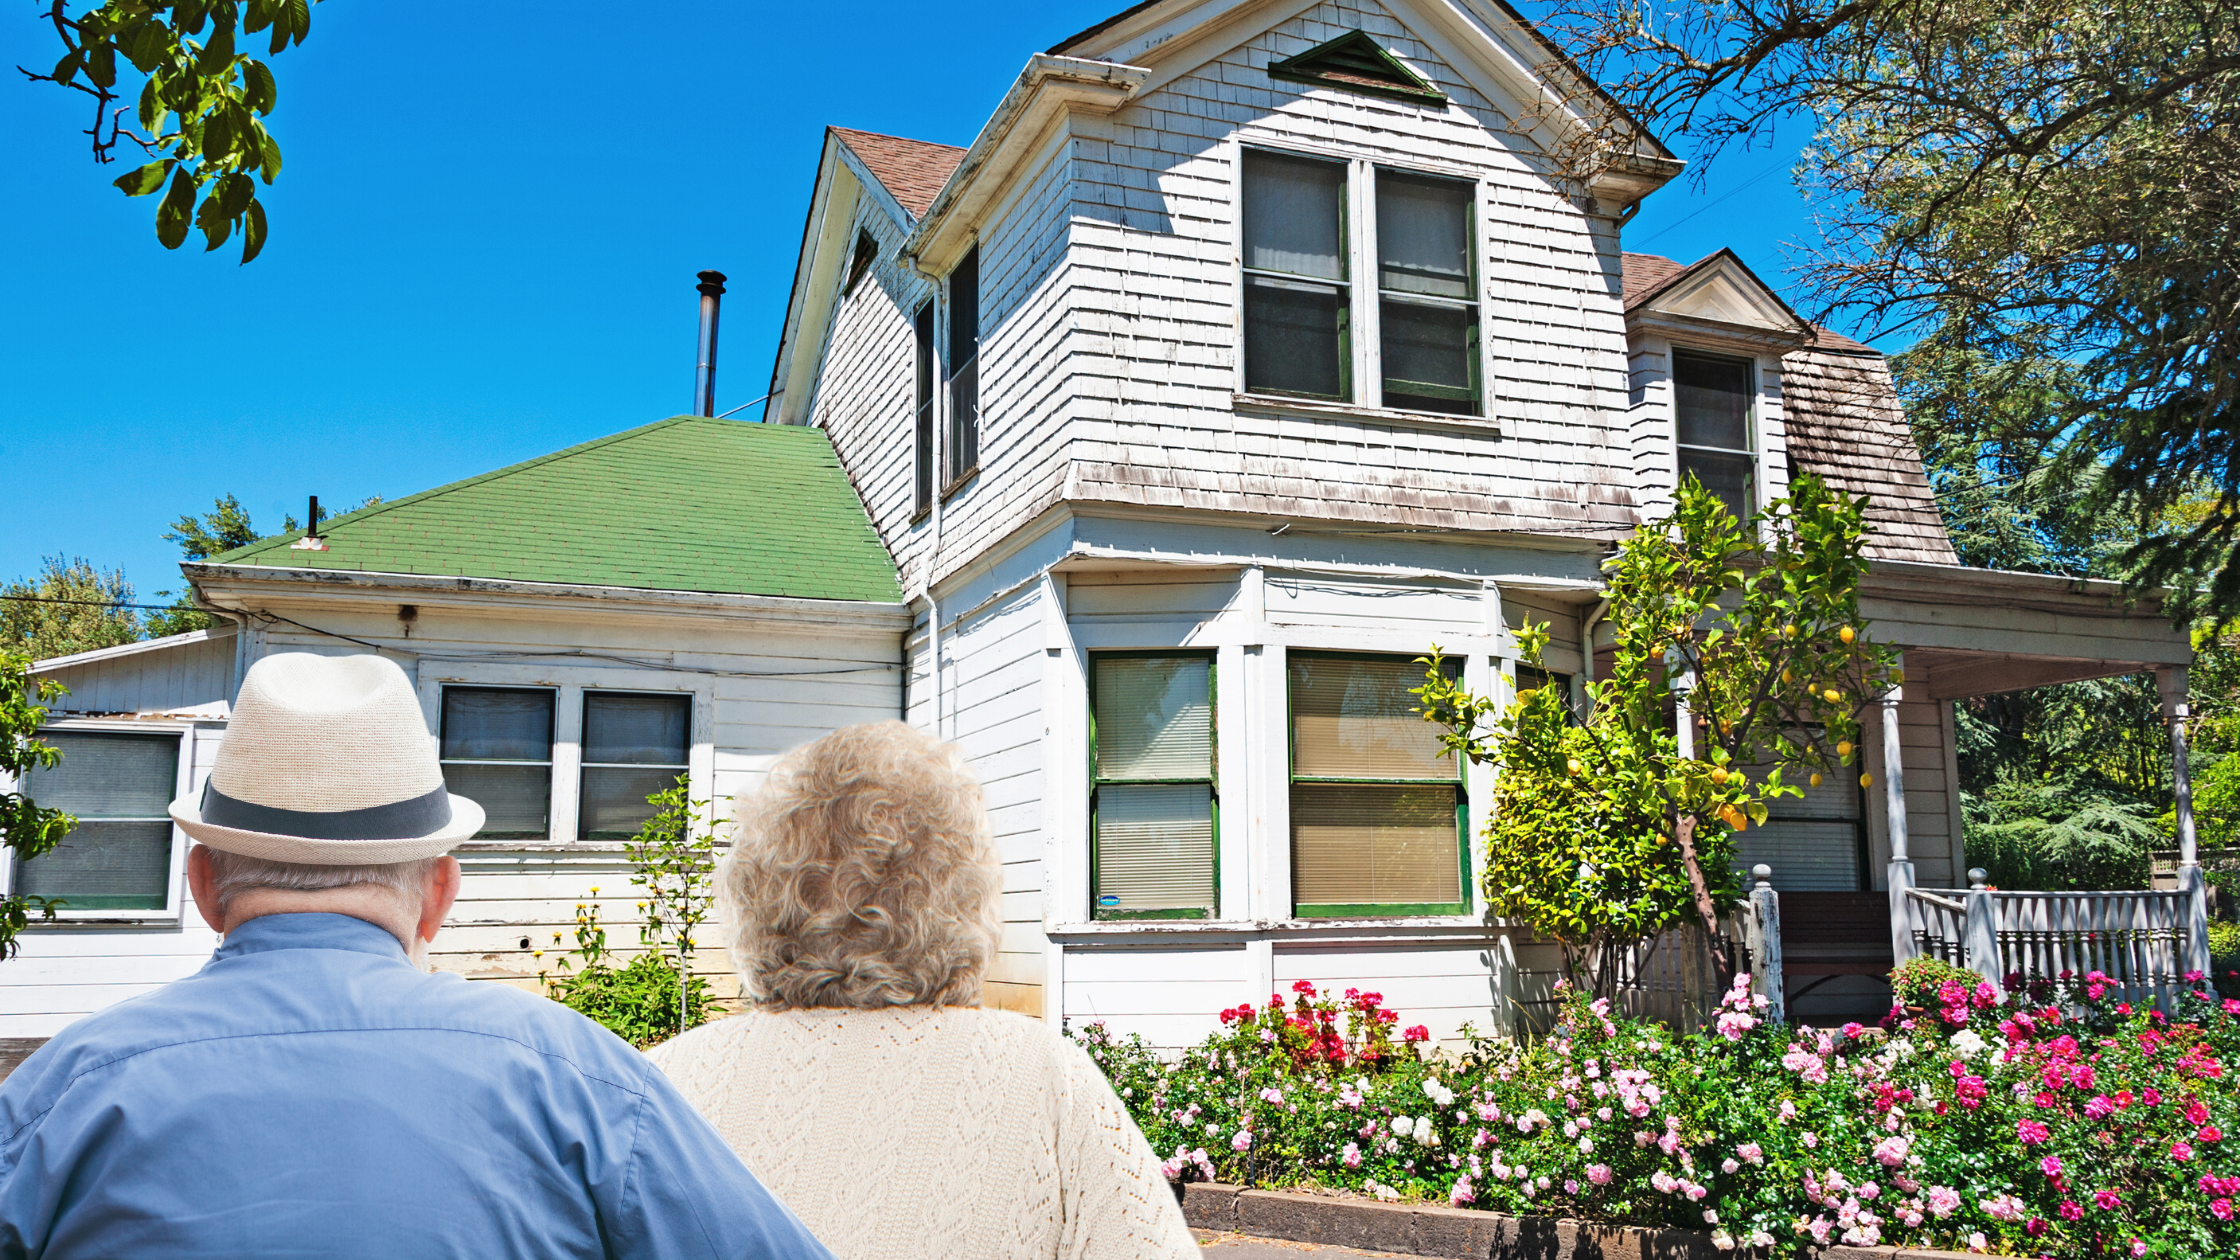 Selling the Family Home - 5 Tips for Letting Go